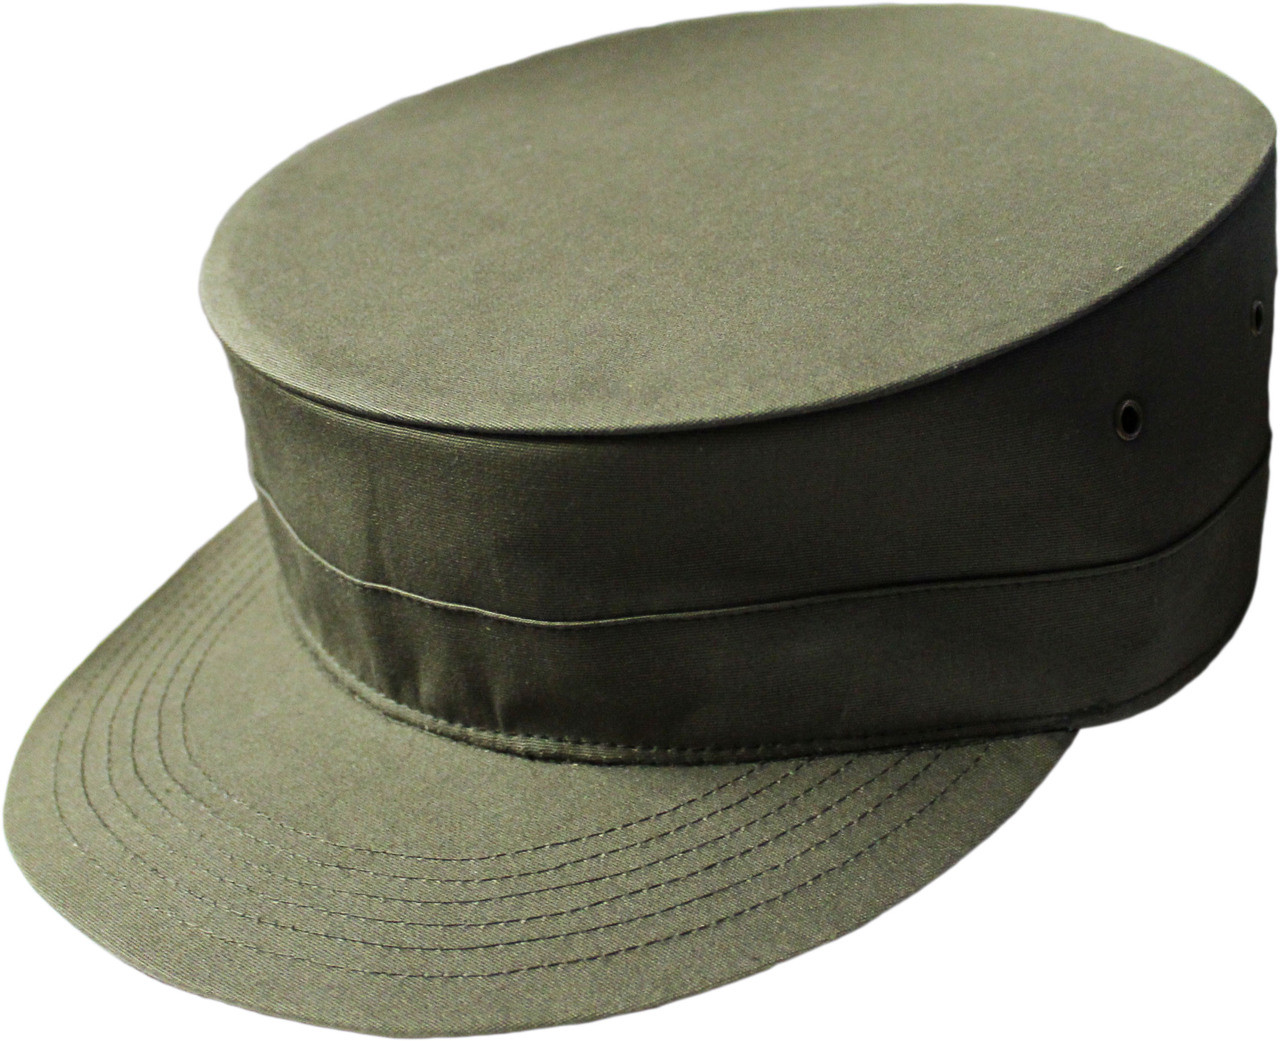 066d5a71c87 Ridgeway Cap Currently Not Available - Mickey s Surplus